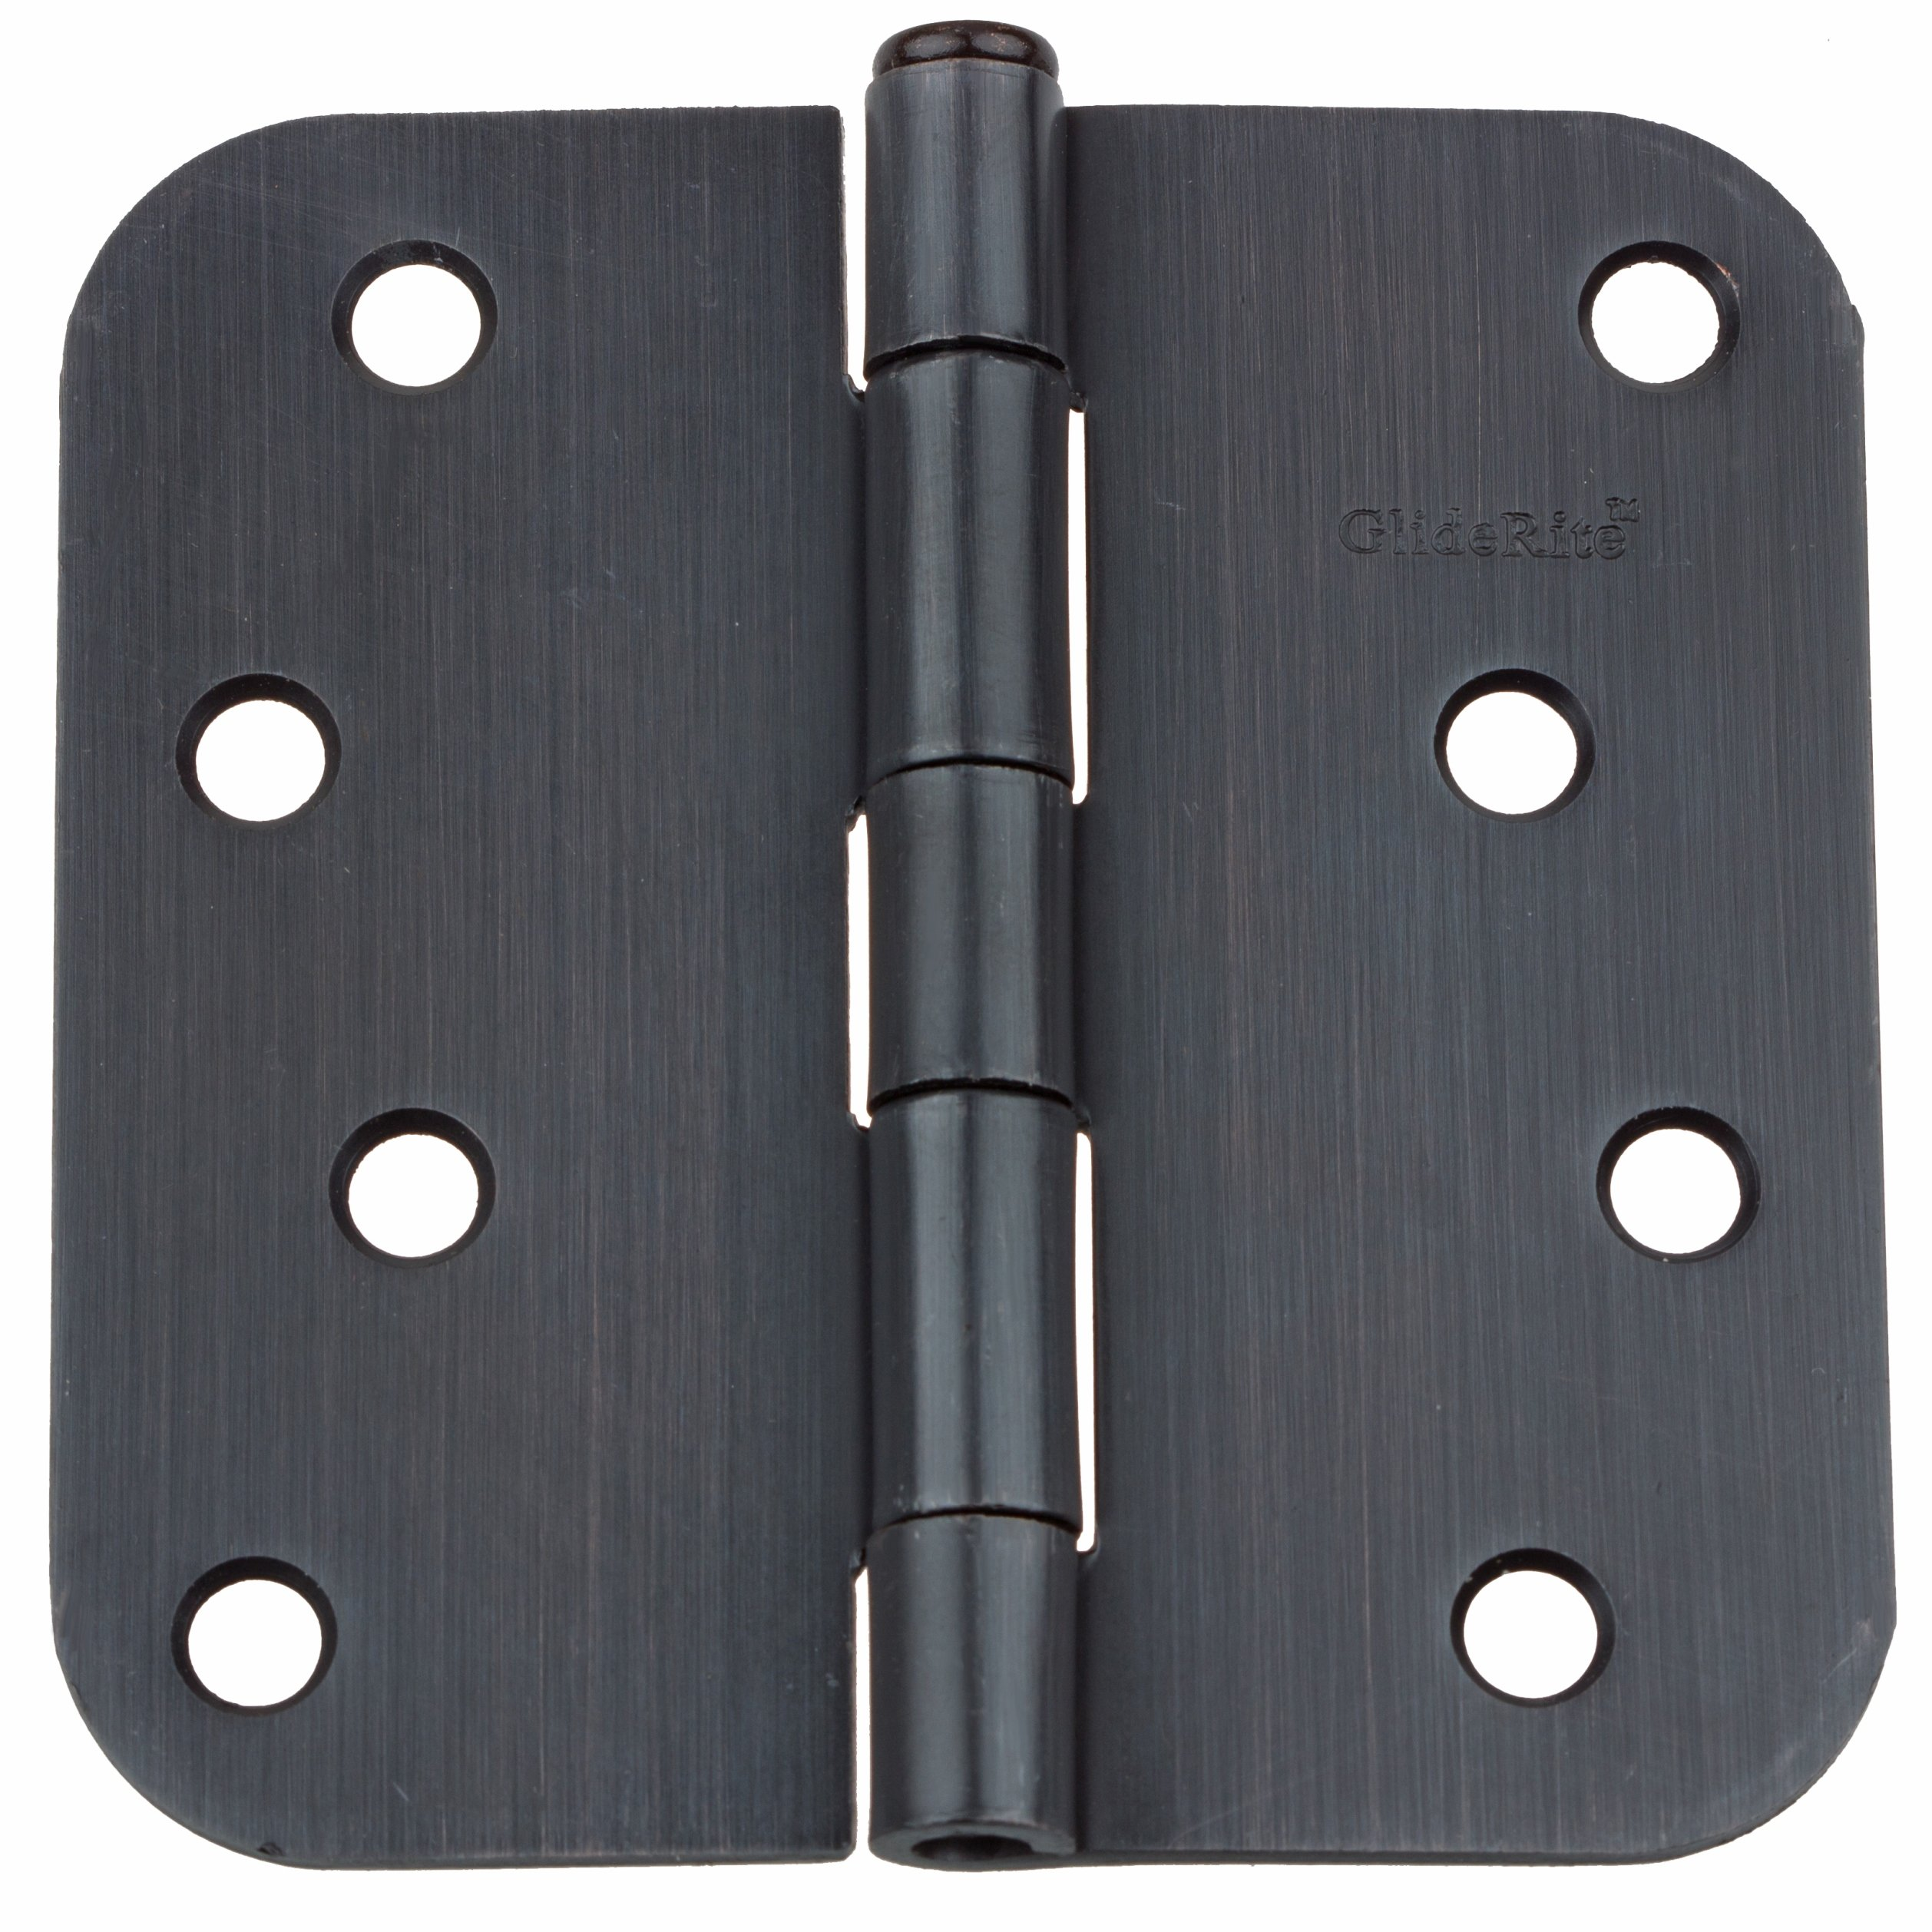 GlideRite Hardware 4058-ORB-12 4 inch steel Door Hinges 0.625 inch Radius Oil Rubbed Bronze Finish 12 Pack